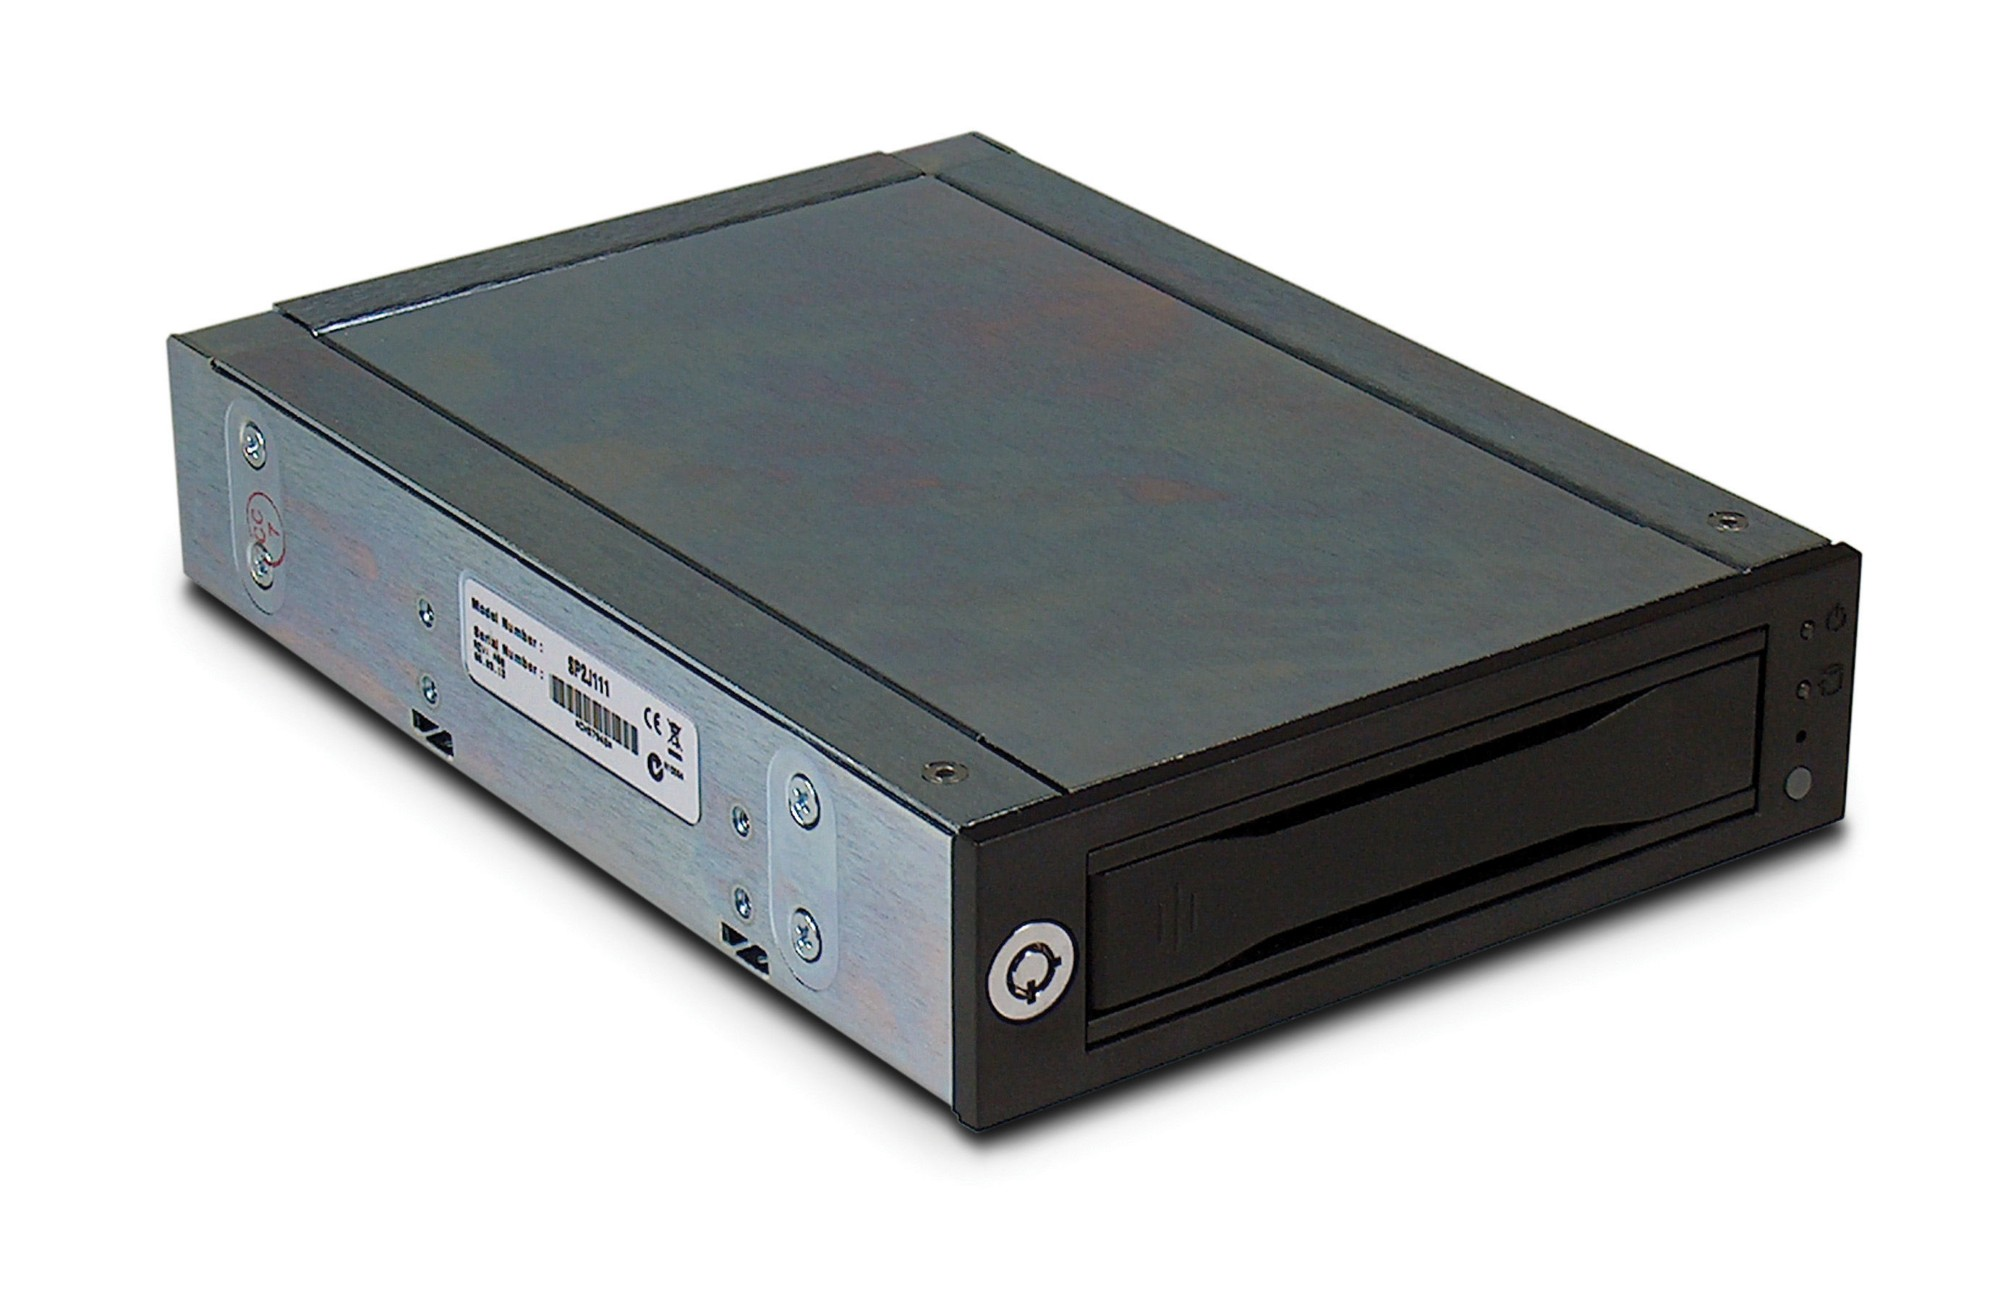 Removable Hard Drive Enclosure DX115 (Frame and Carrier)